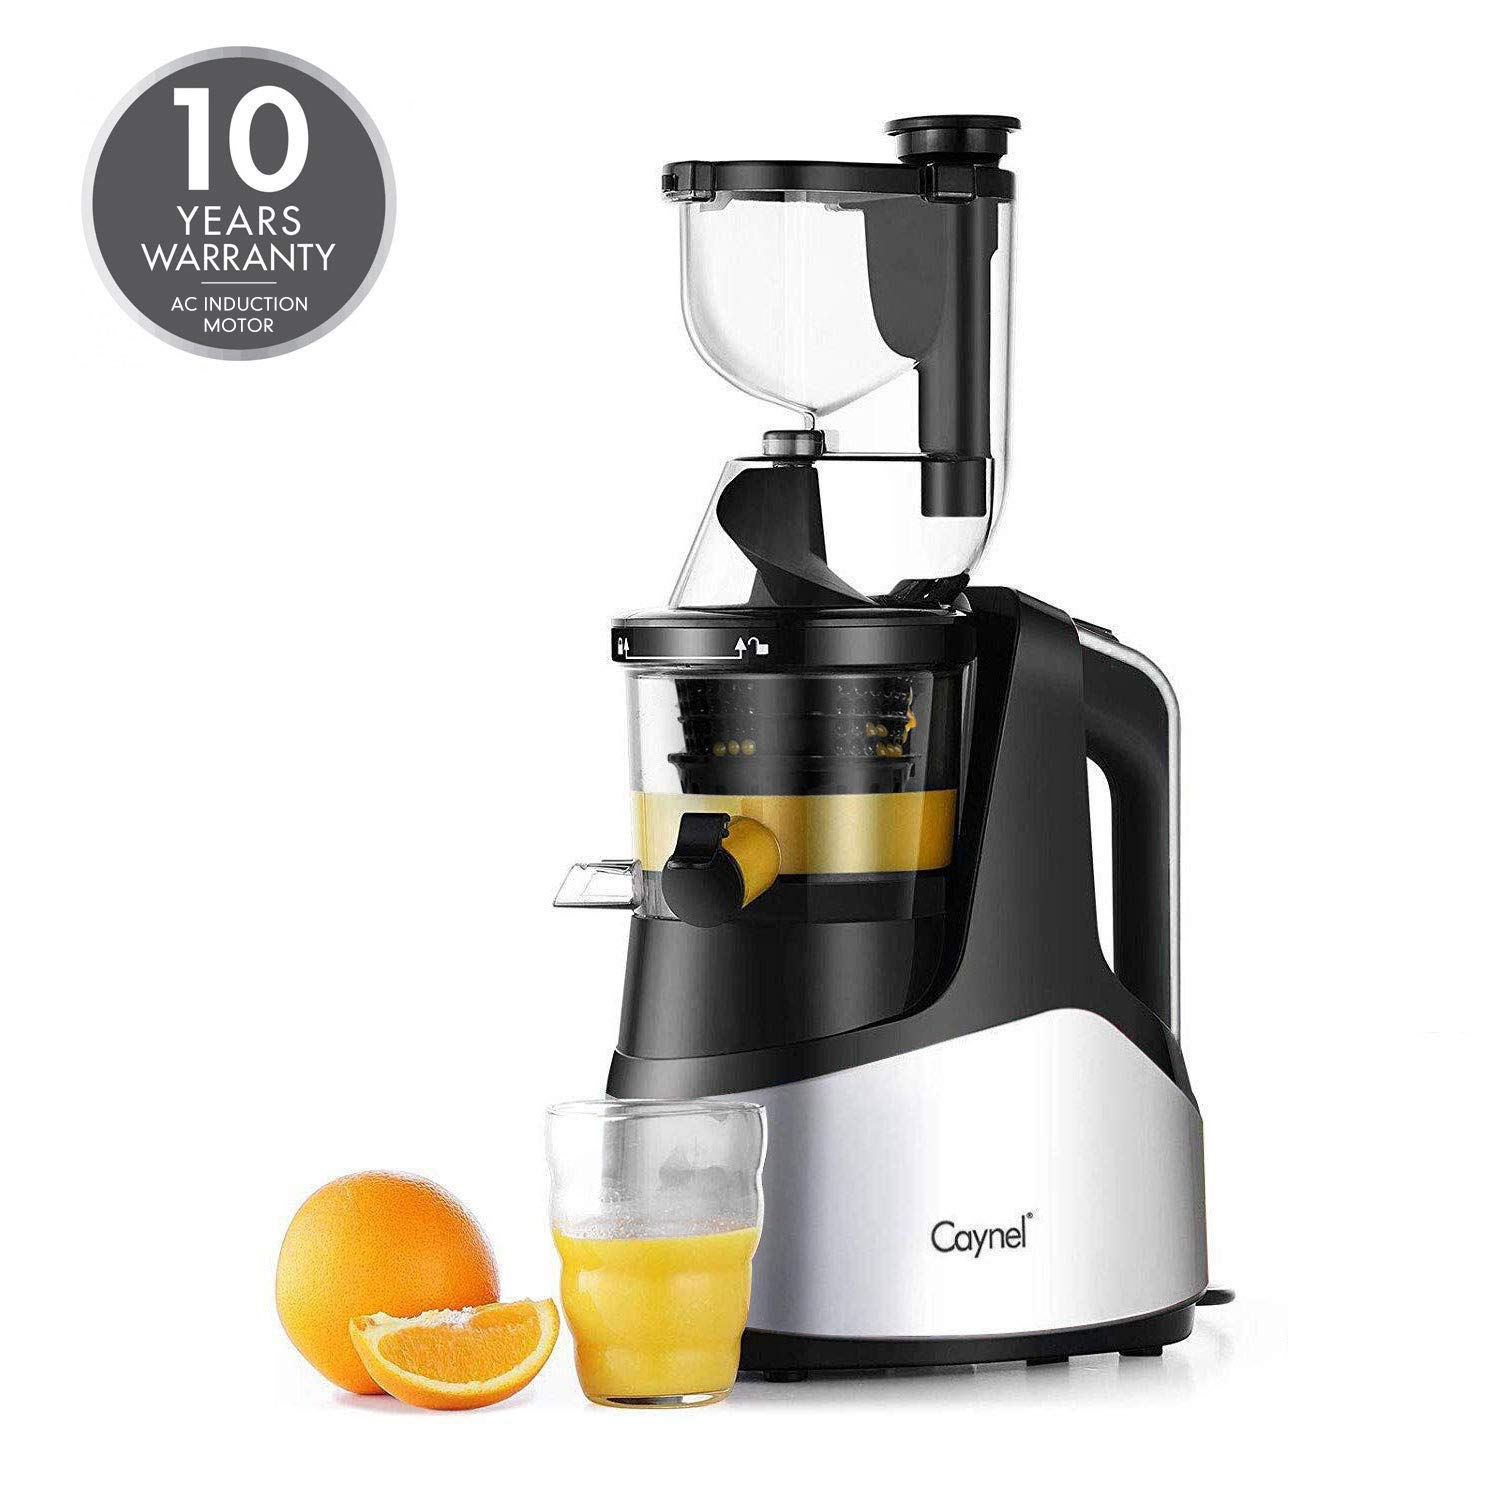 Slow Masticating Juicer Caynel Cold Press Extractor with 3'' Wide Chute for Fruits, Vegetables and Herbs, Quiet Durable Motor with Reverse Function, Smoothie Strainer Included, High Yield Vertical Juicer Easy Cleaning , BPA Free (Silver) by CAYNEL